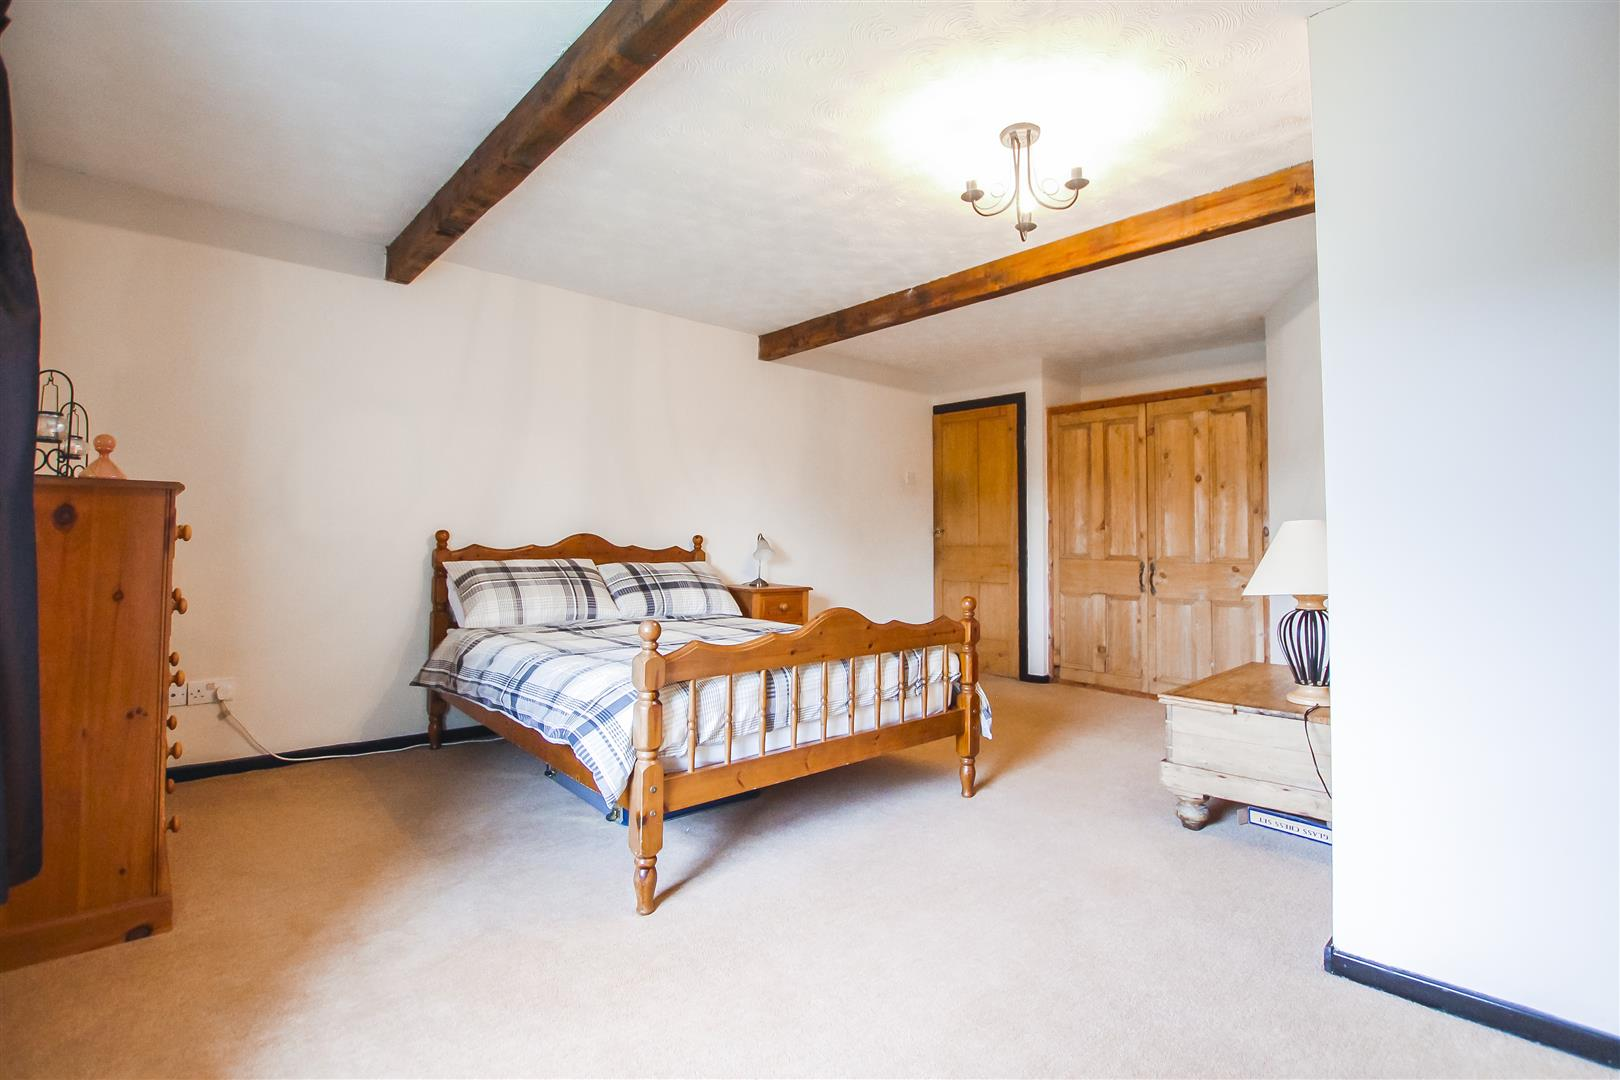 5 Bedroom Barn Conversion For Sale - Image 11